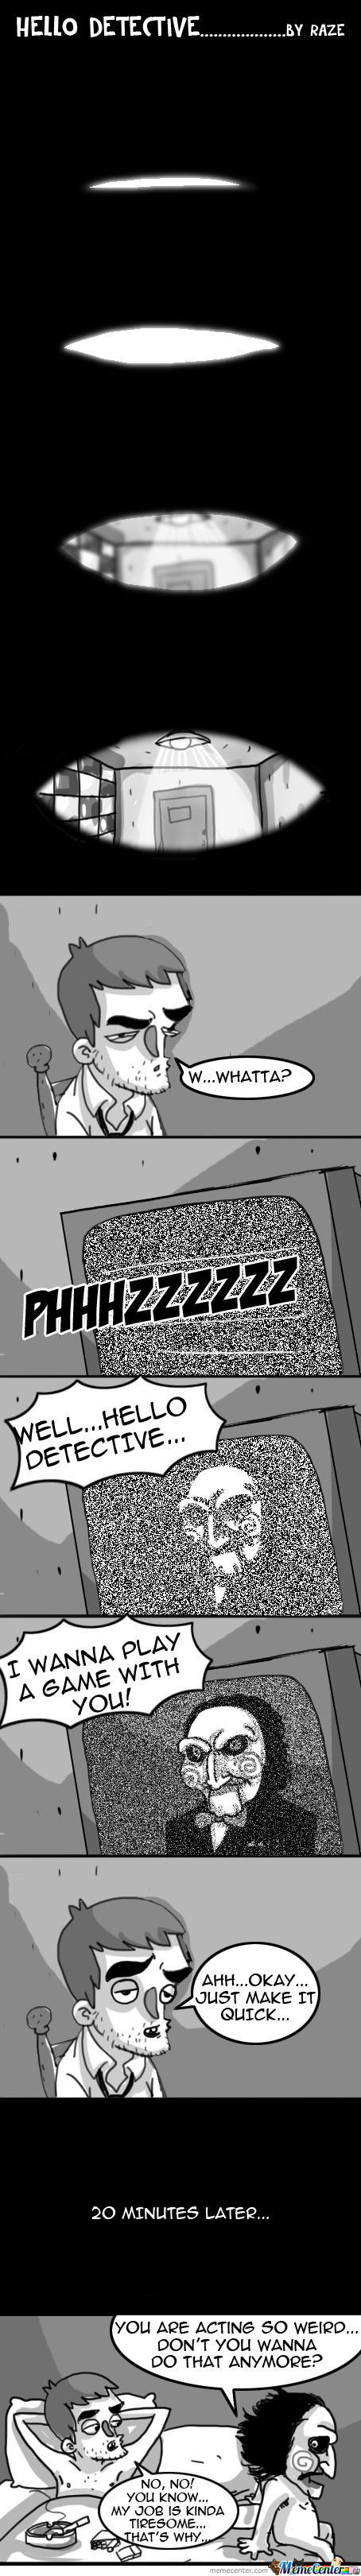 Hello Detective - By Raze